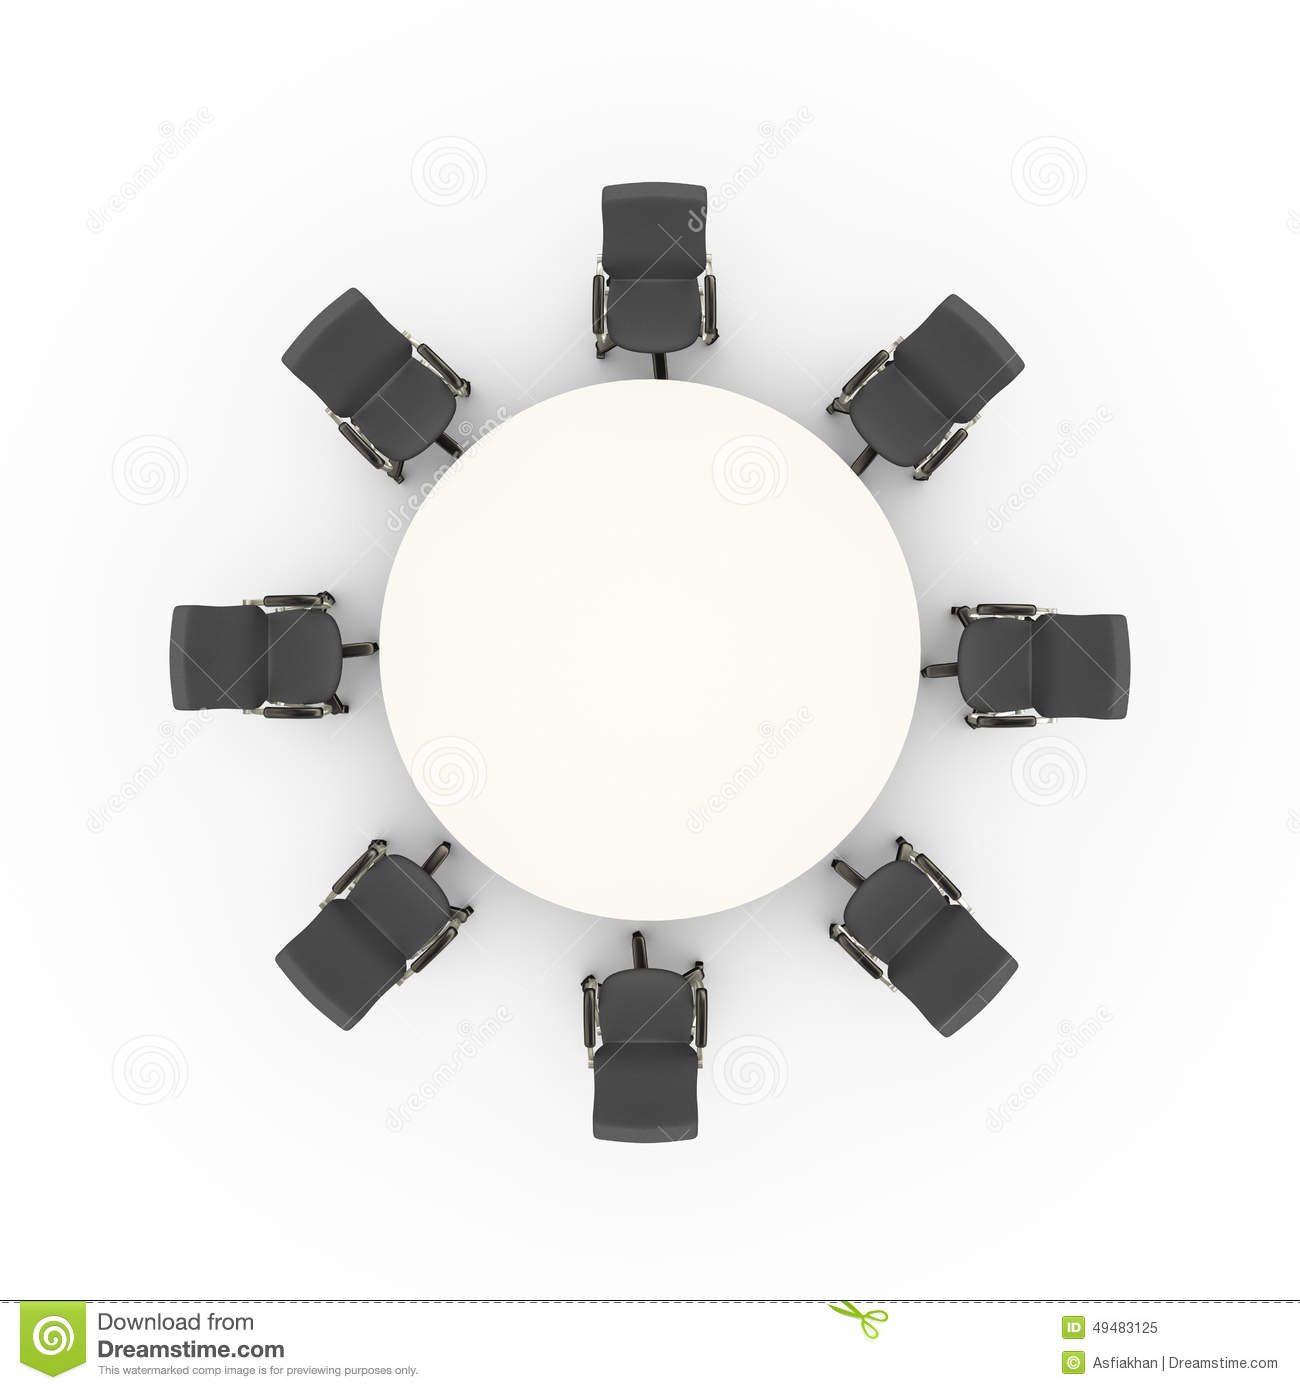 Round table meeting icon - Download